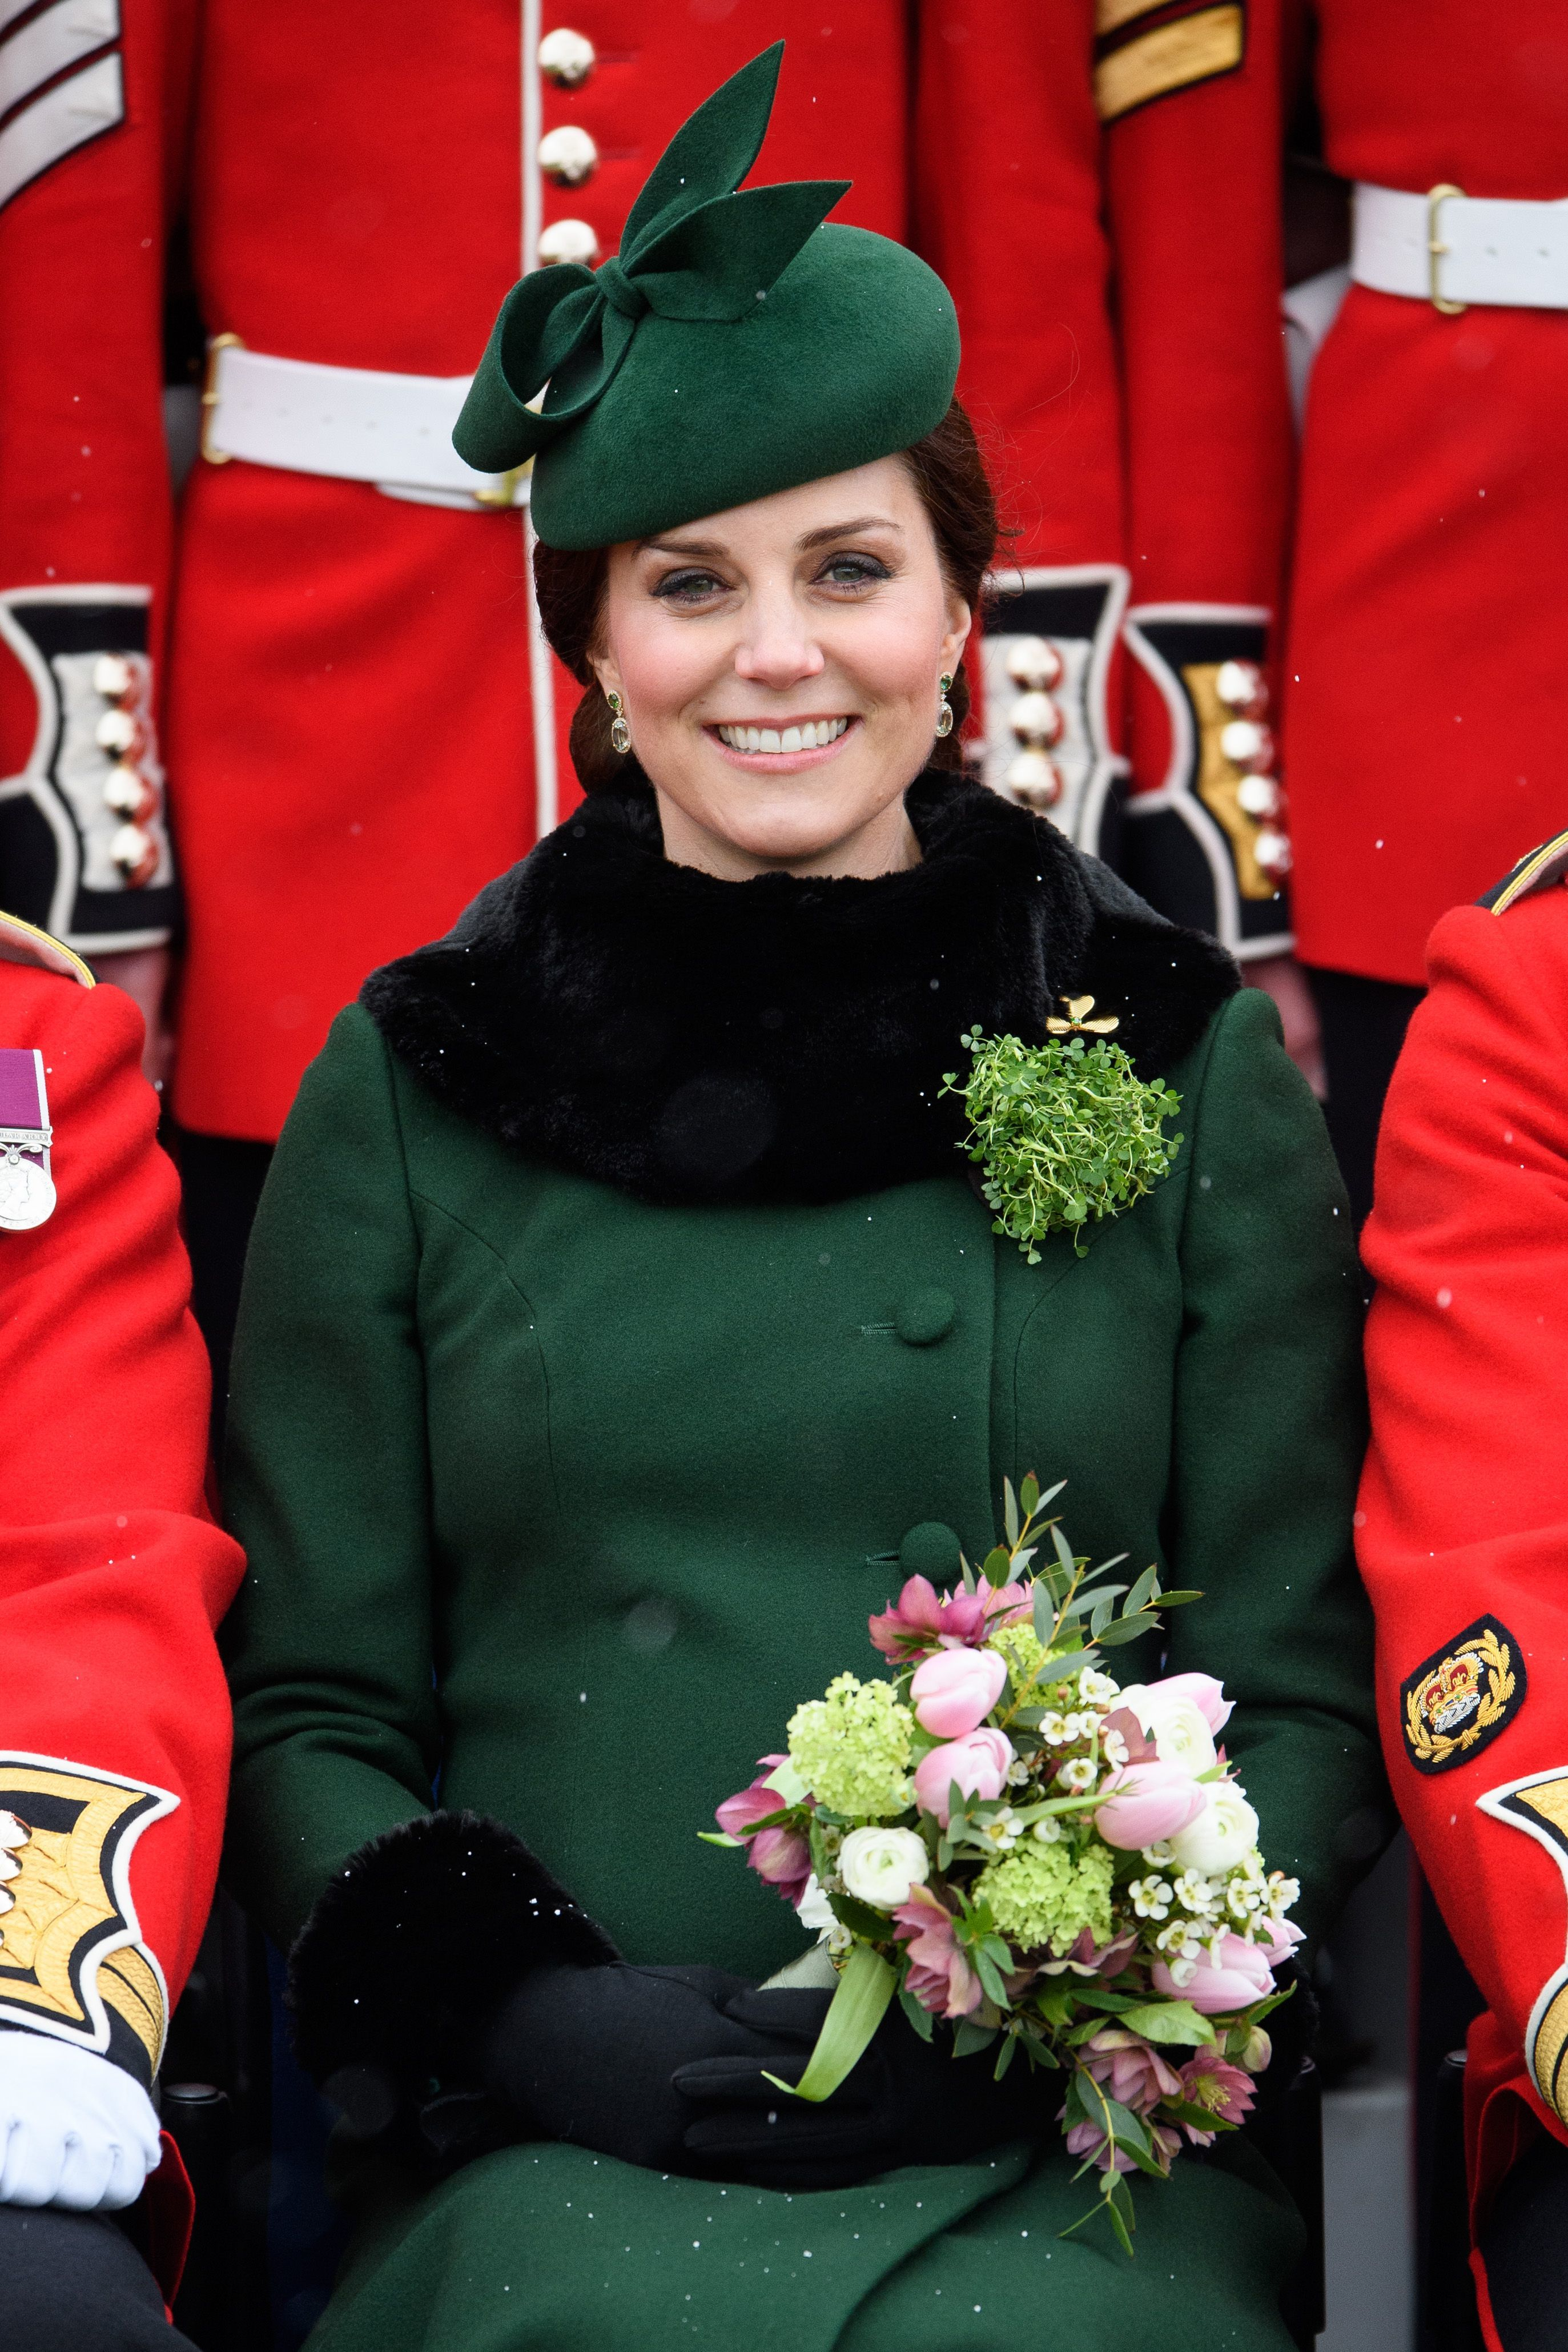 Duchess Kate attends the St Patrick's Day Parade at Cavalry Barracks in Hounslow on March 17, 2018.